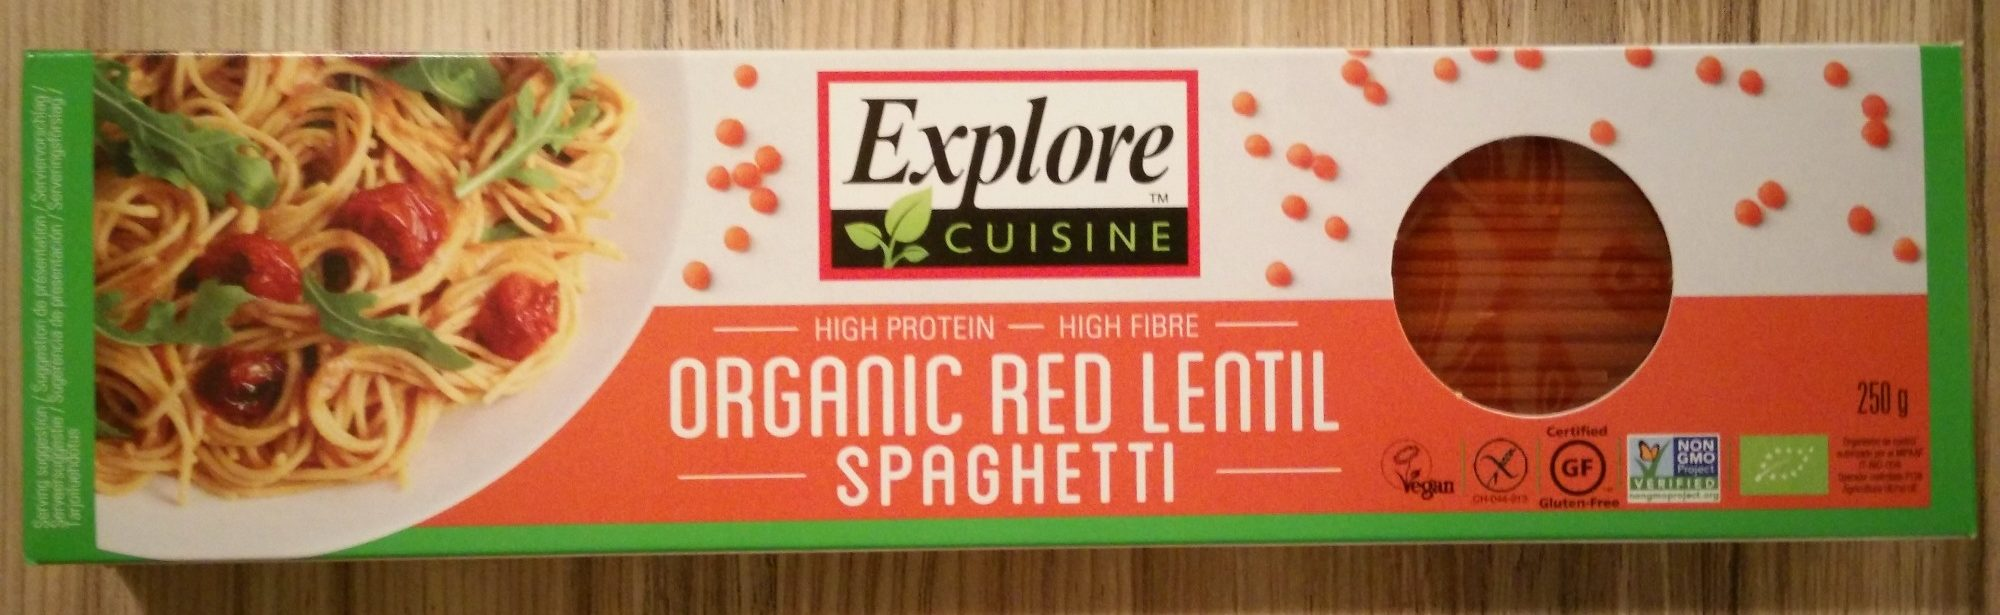 Organic Red Lentil Spaghetti - Product